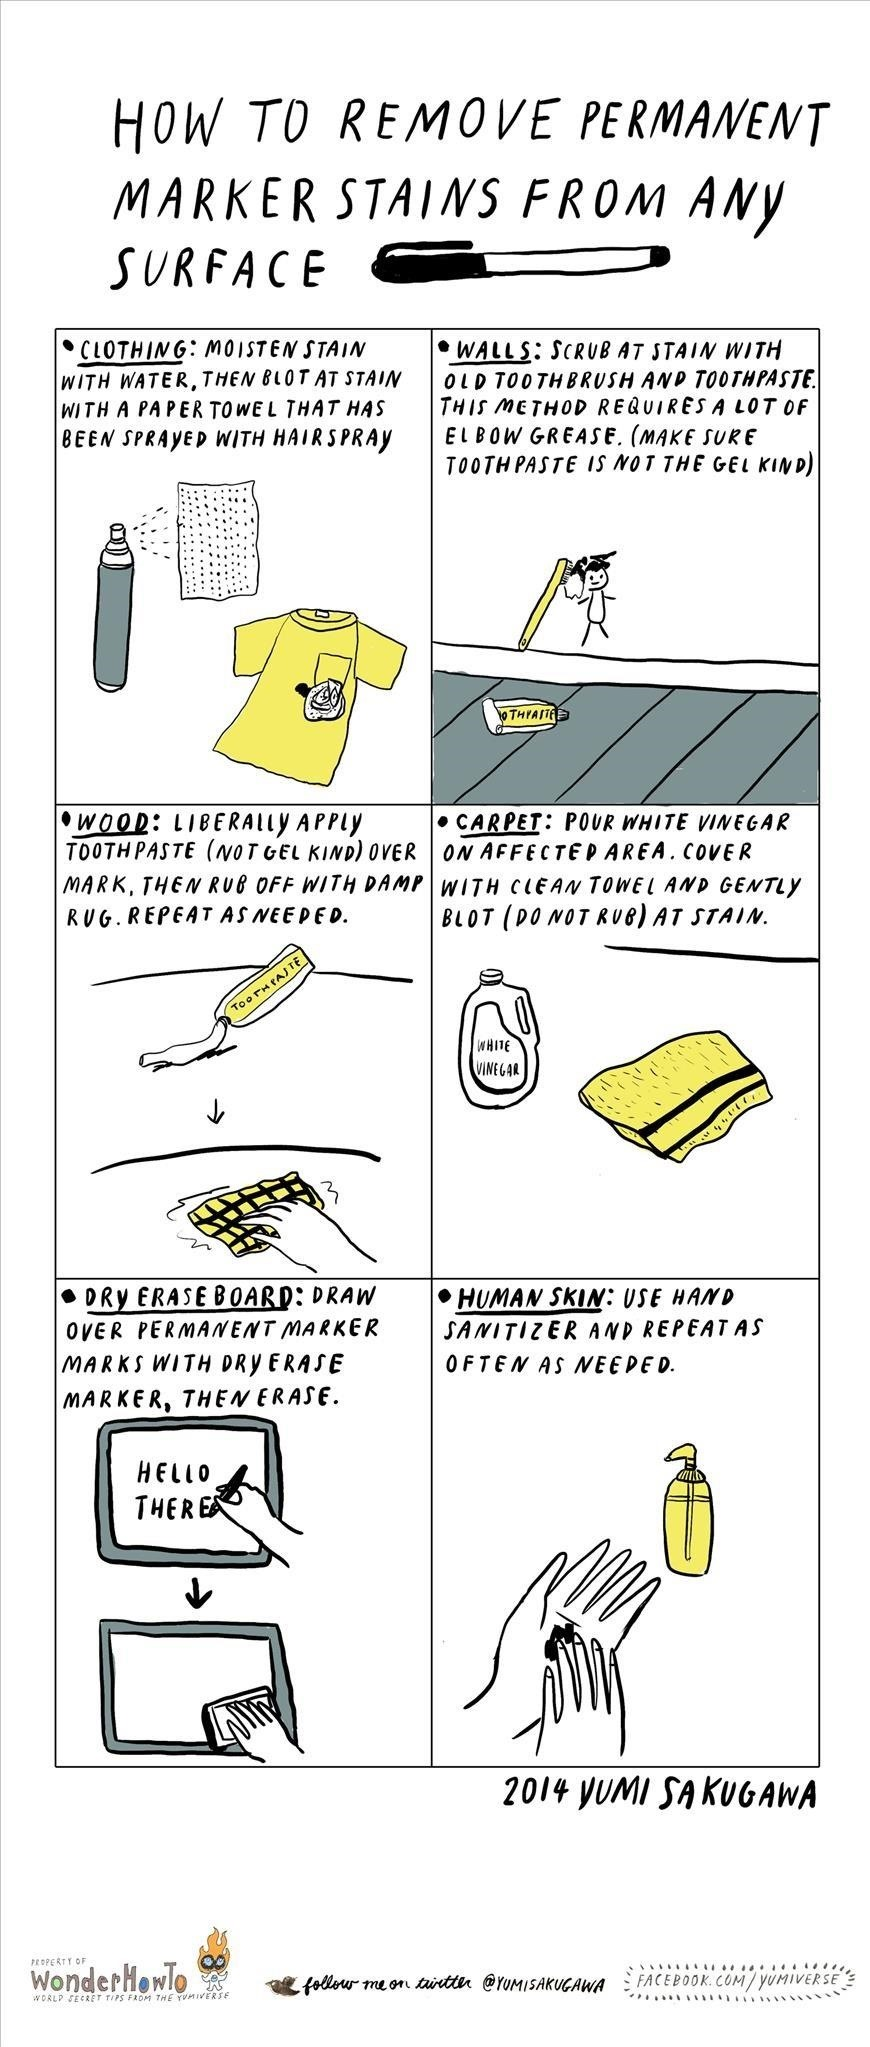 how to get rid of ink marks on leather sofa faux sofas reviews remove permanent marker stains from any surface the secret yumiverse wonderhowto